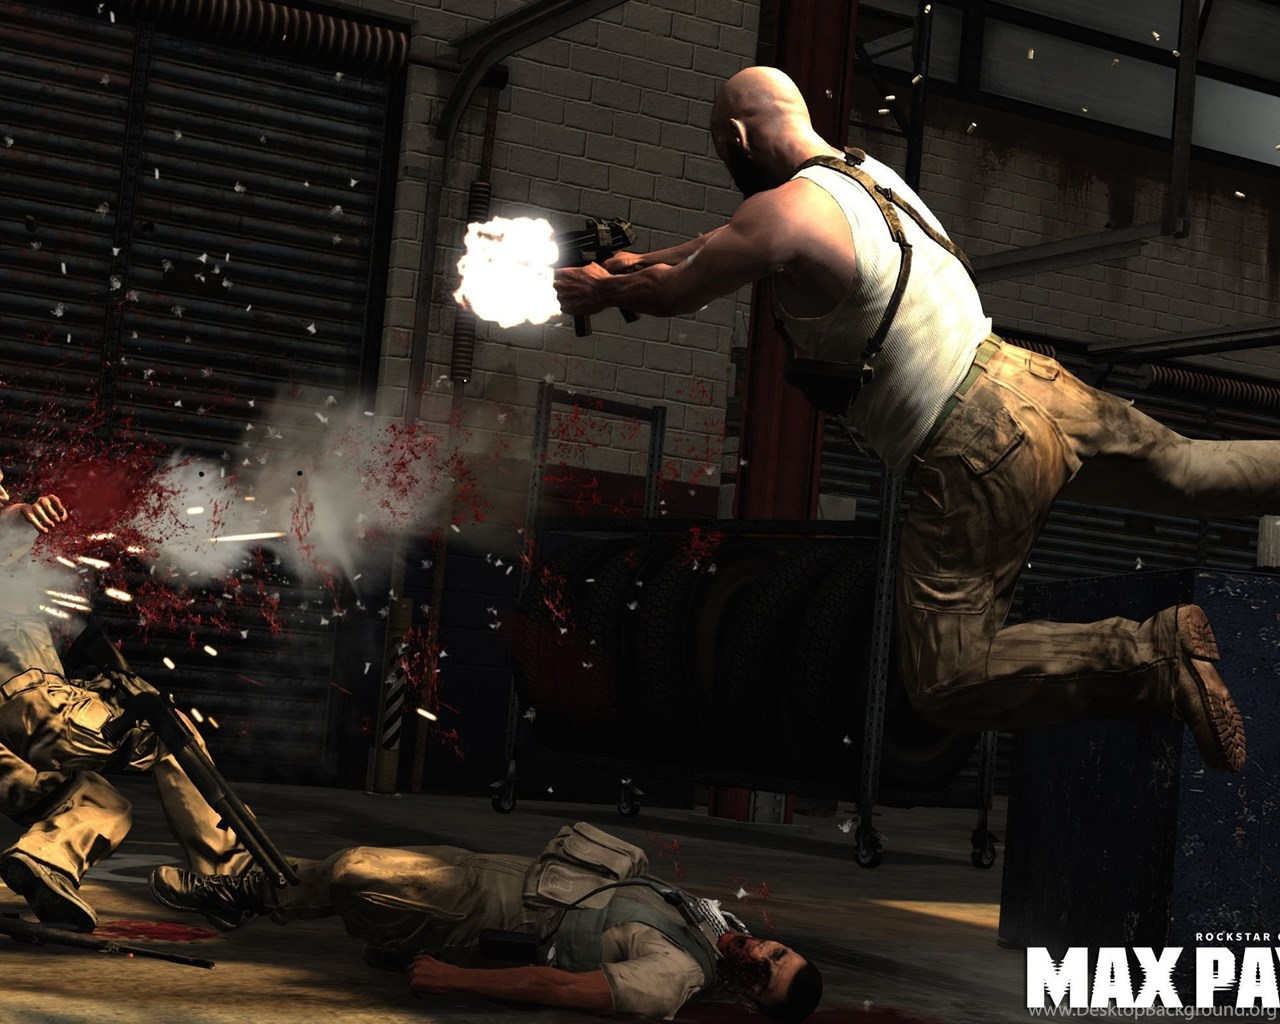 Max Payne 3 Hd Wallpapers Desktop Background